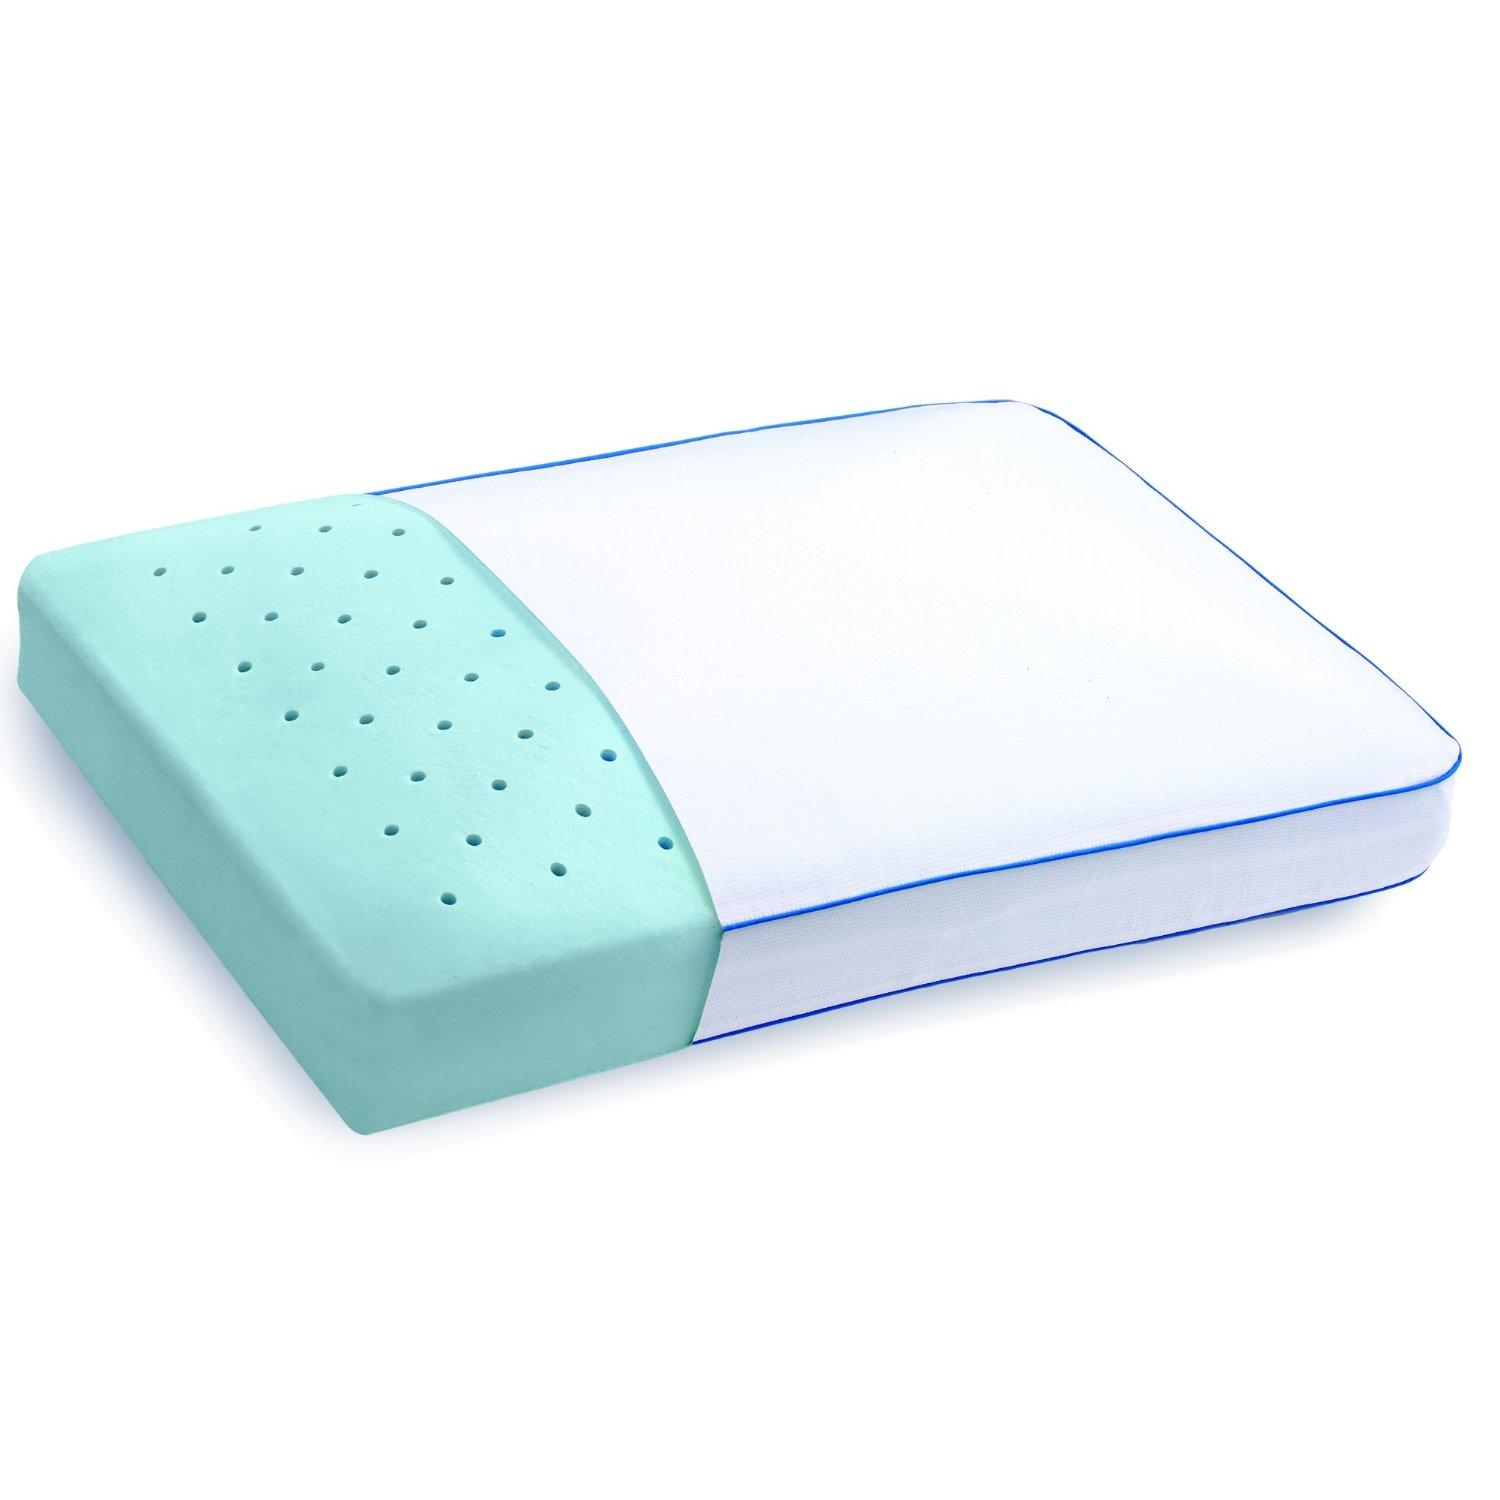 memory foam cooling pillow Amazon.com: Serta Gel Memory Foam Side Sleeper Pillow: Home & Kitchen memory foam cooling pillow